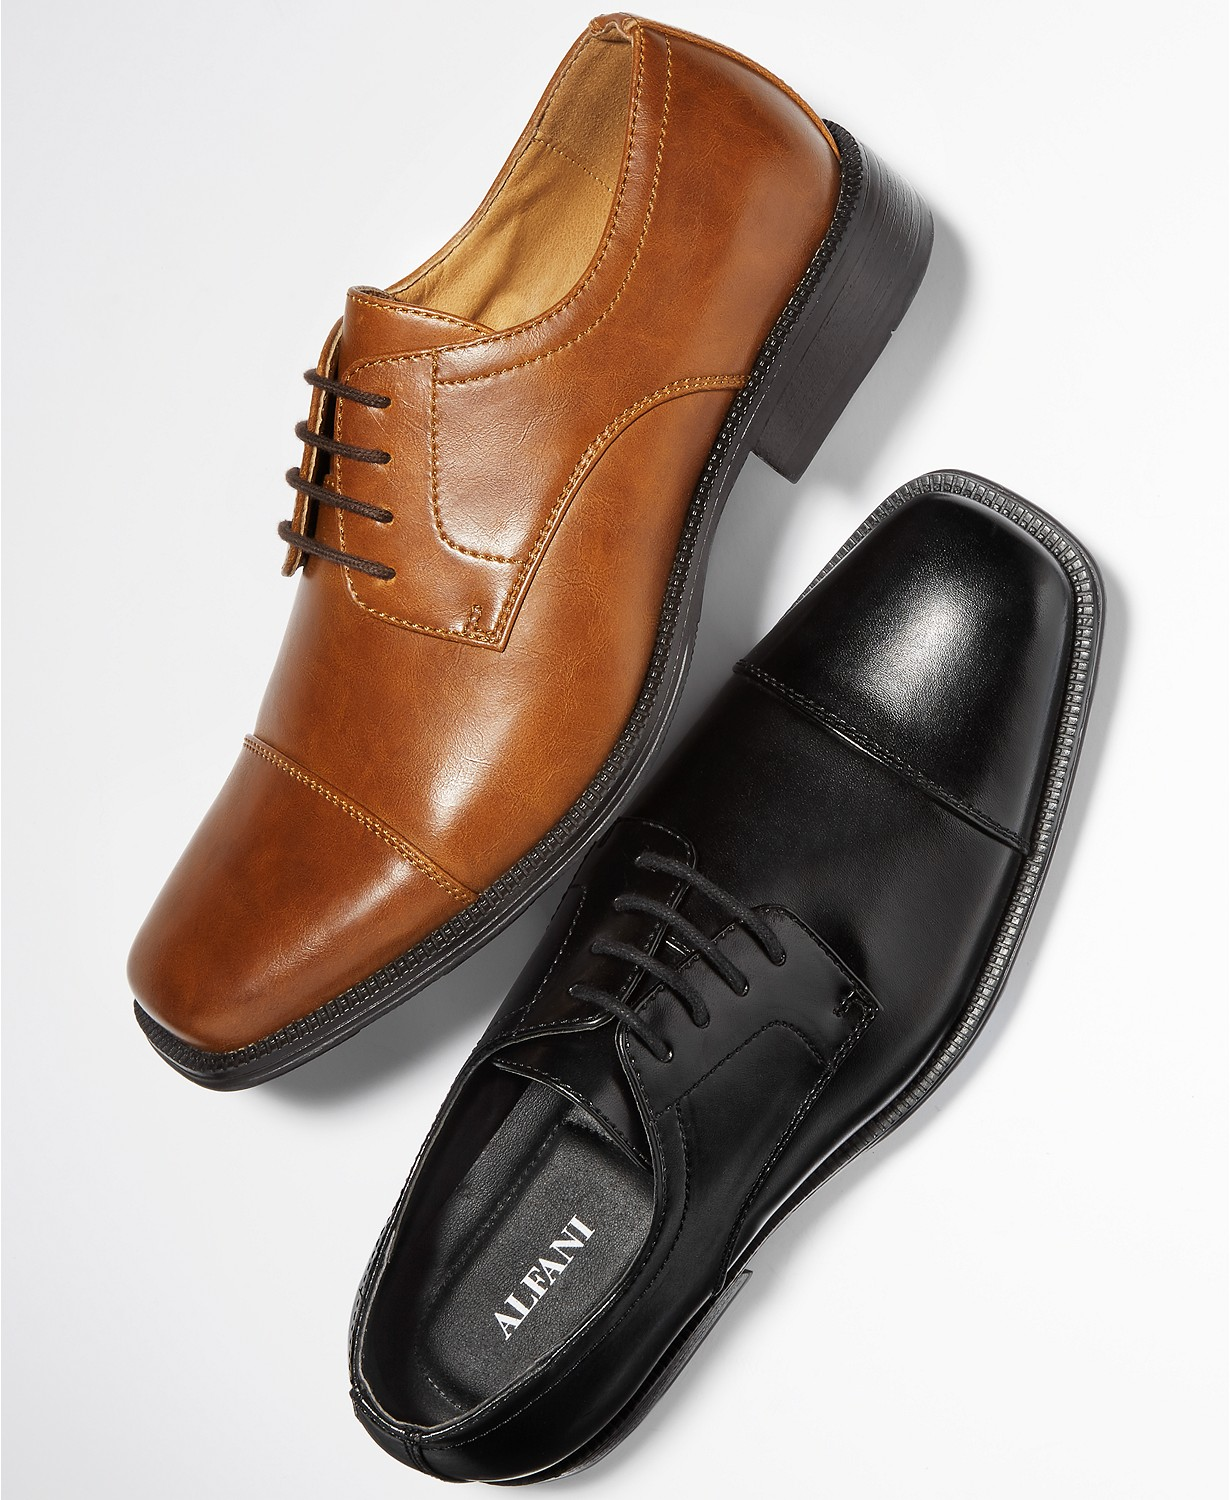 Alfani Cap Toe Dress Shoes